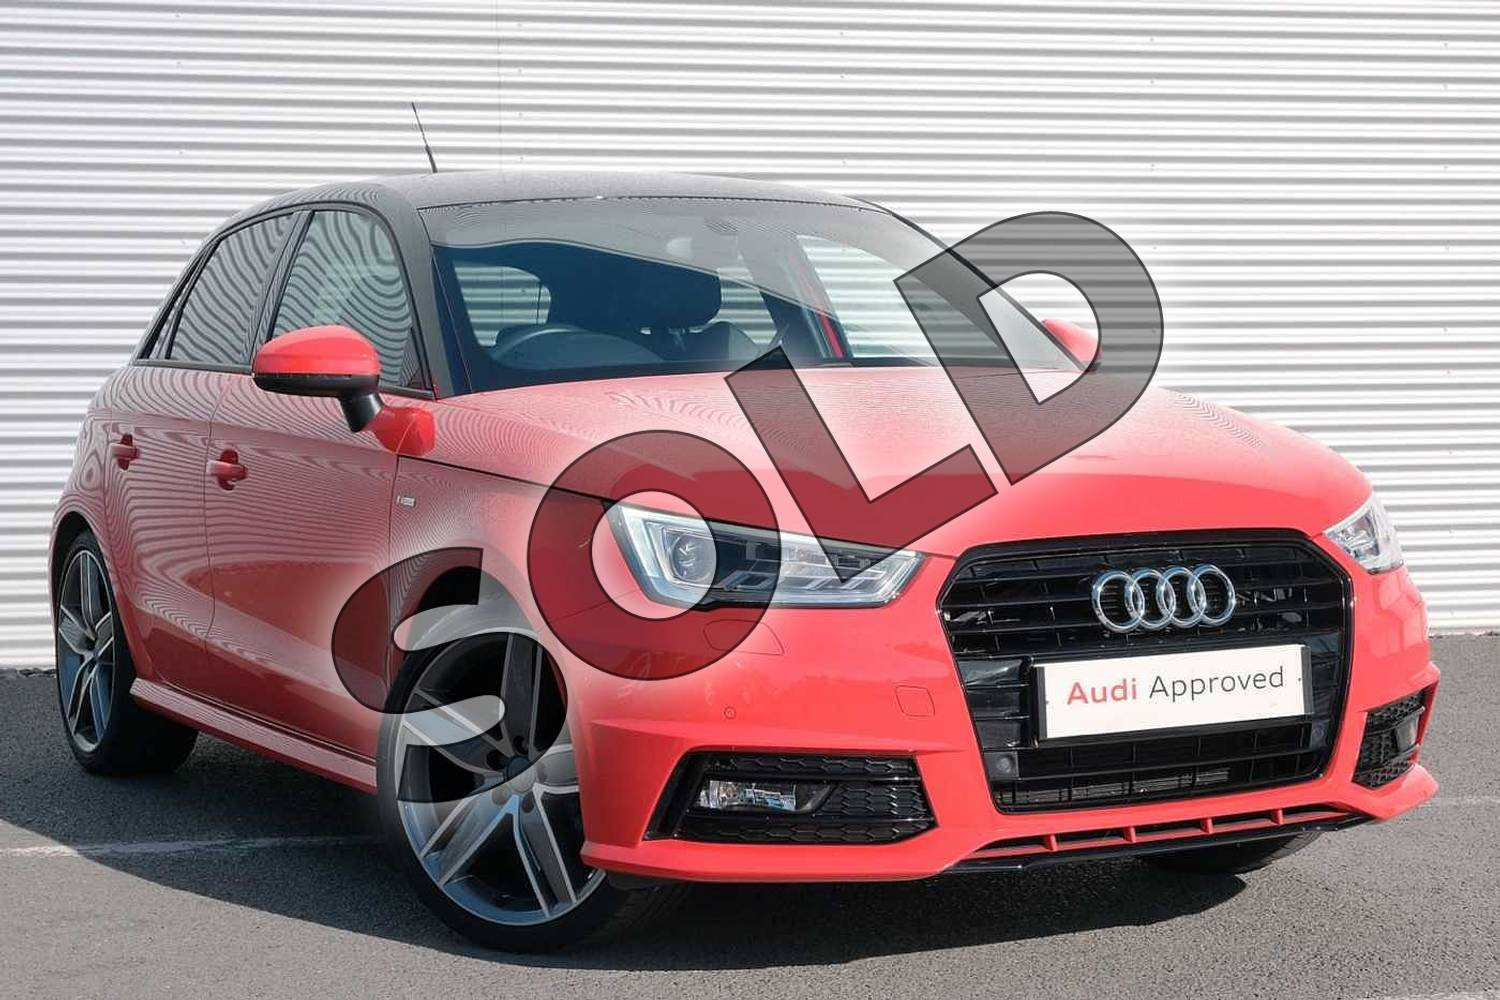 2017 Audi A1 Sportback Special Editions 1.4 TFSI 150 Black Edition 5dr in Misano Red Pearlescent at Coventry Audi